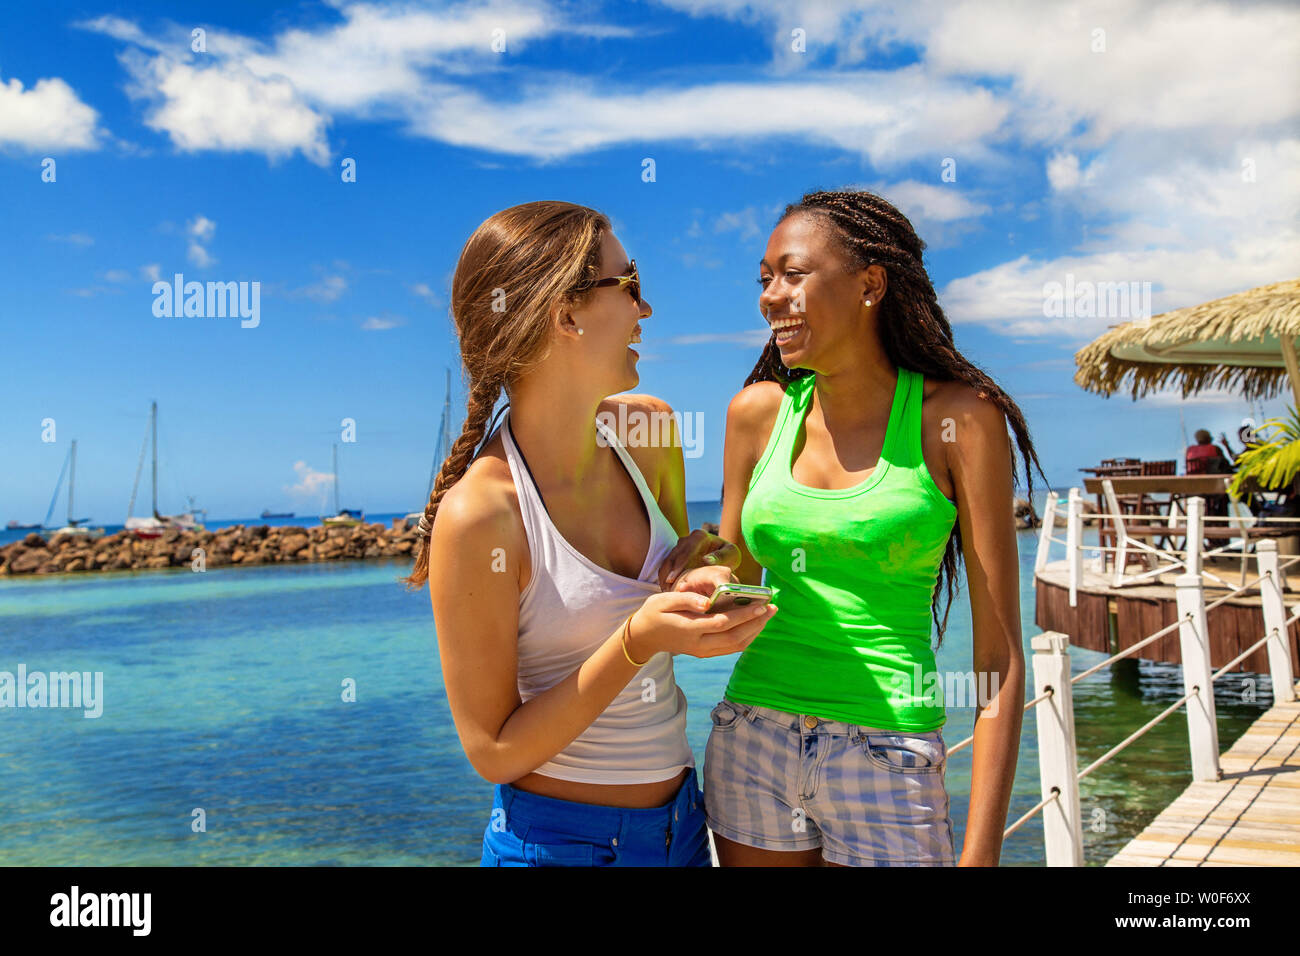 2 smiling girlfriends speaking and smiling  on a footbridge coming from a bar on stilts on a Caribbean beach in a paradisiacal landscape. - Stock Image